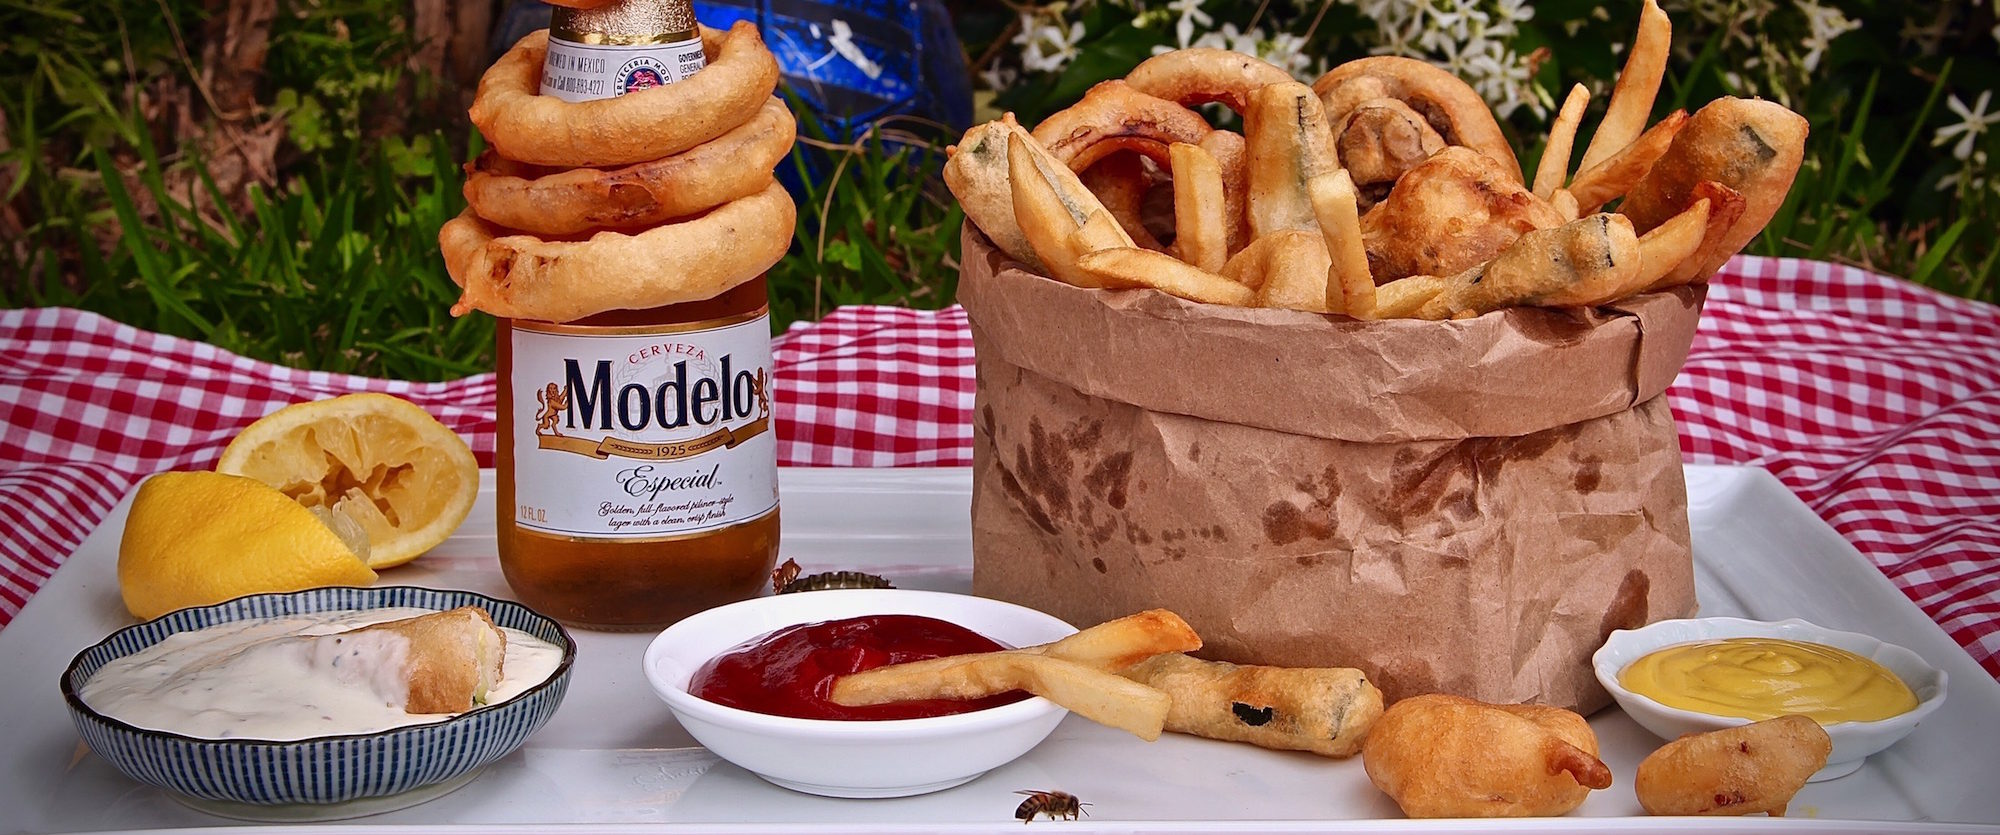 Beer Battered Veggies #ModeloSummer